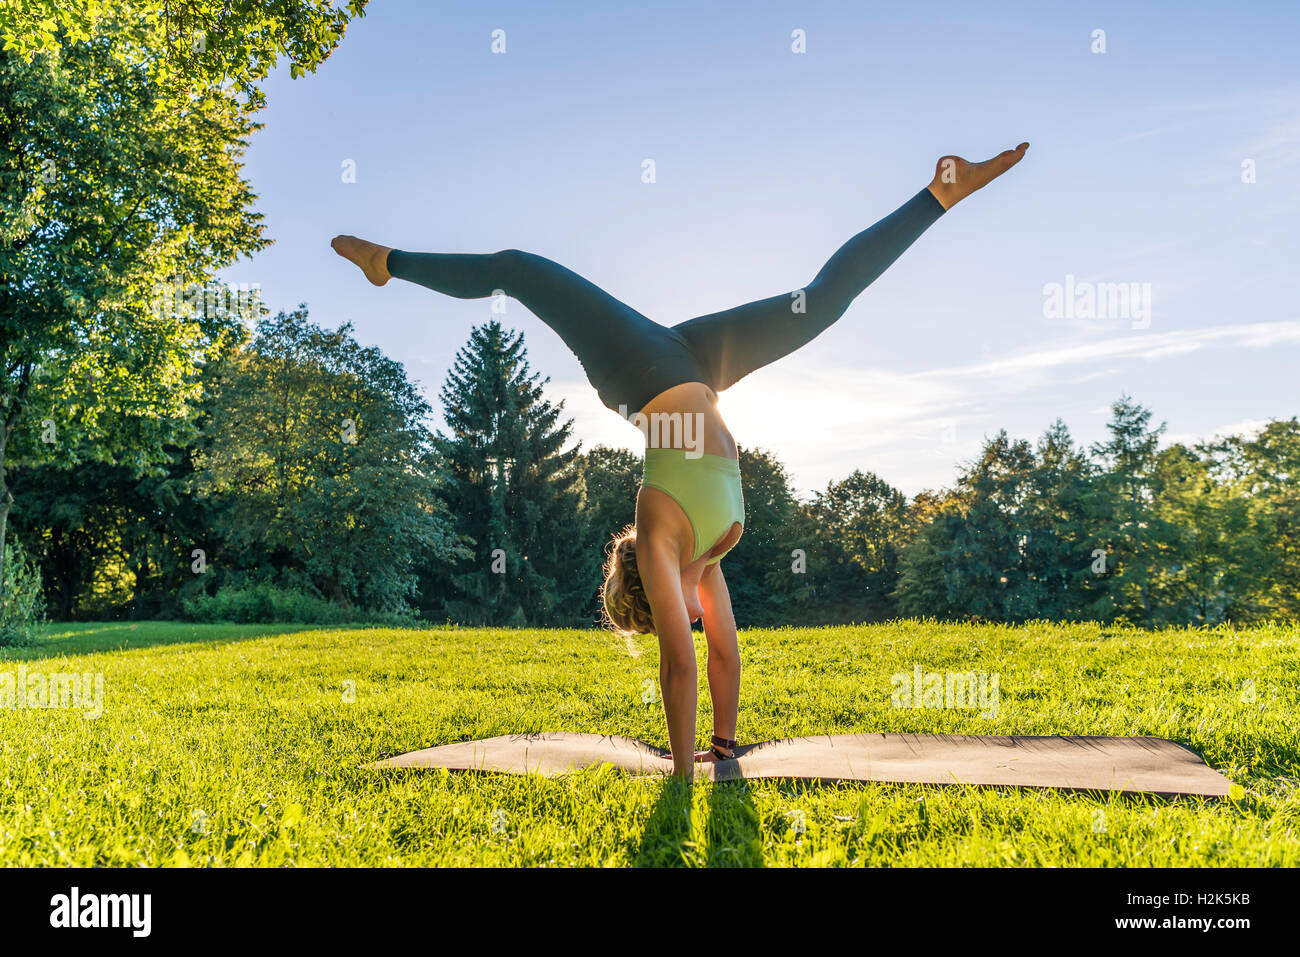 Handstand, young woman in sportswear doing workout on mat in park, Munich, Upper Bavaria, Bavaria, Germany - Stock Image